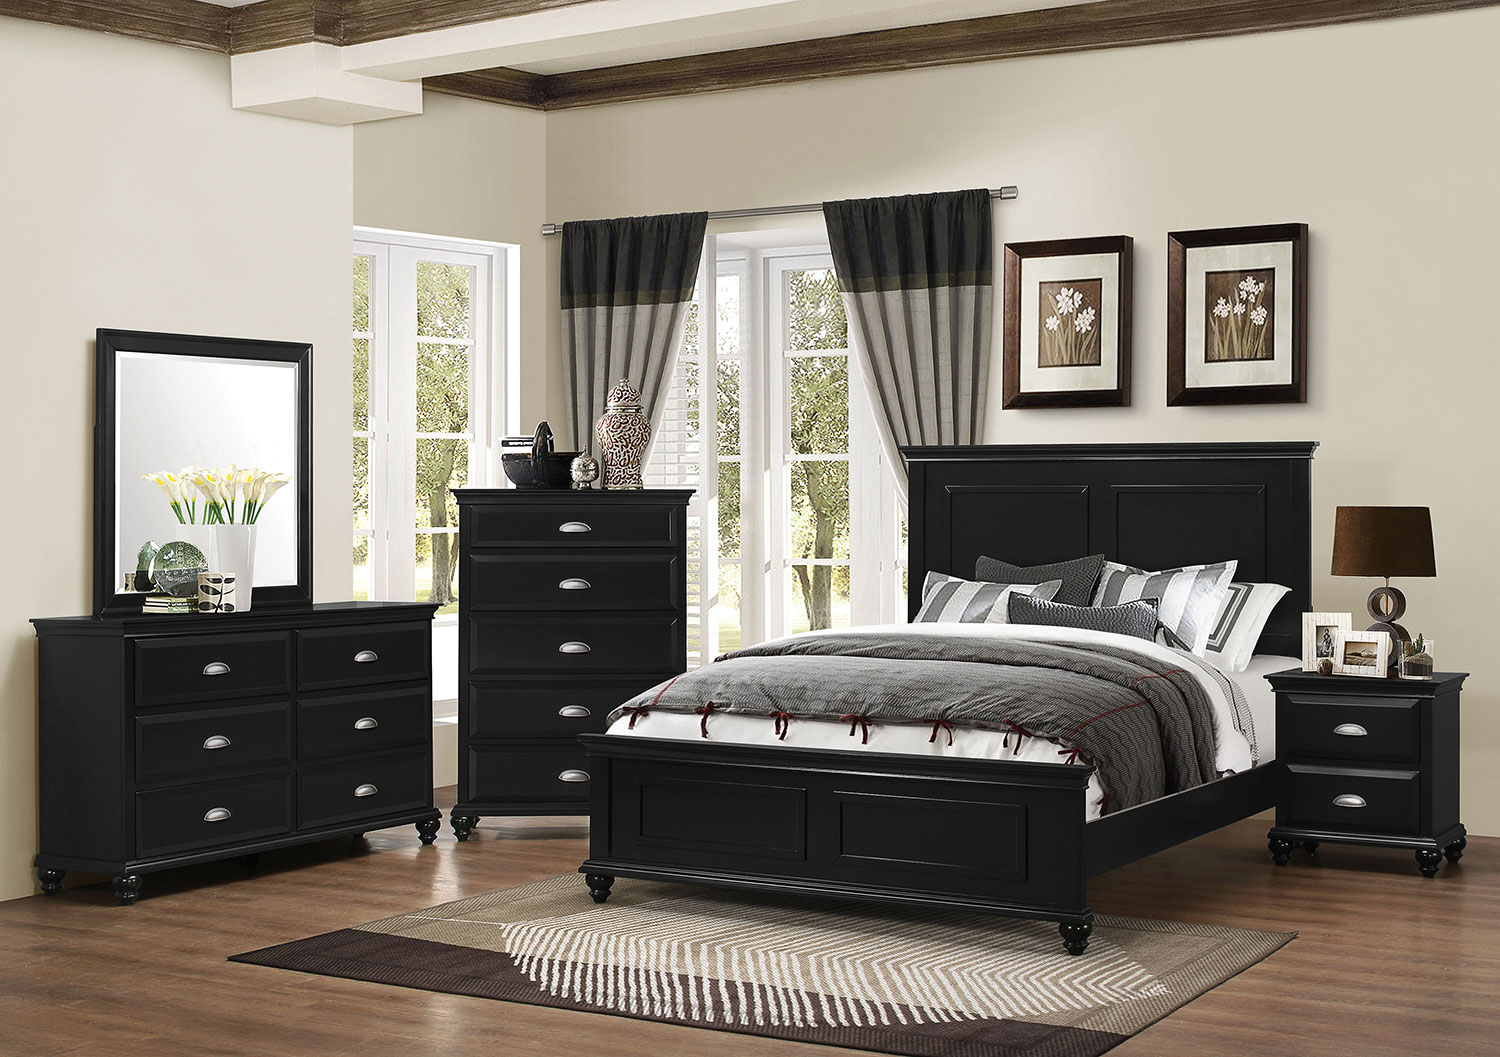 Meadow Grove 4-Piece King Bedroom Set with Dresser, Mirror and Nightstand - Black